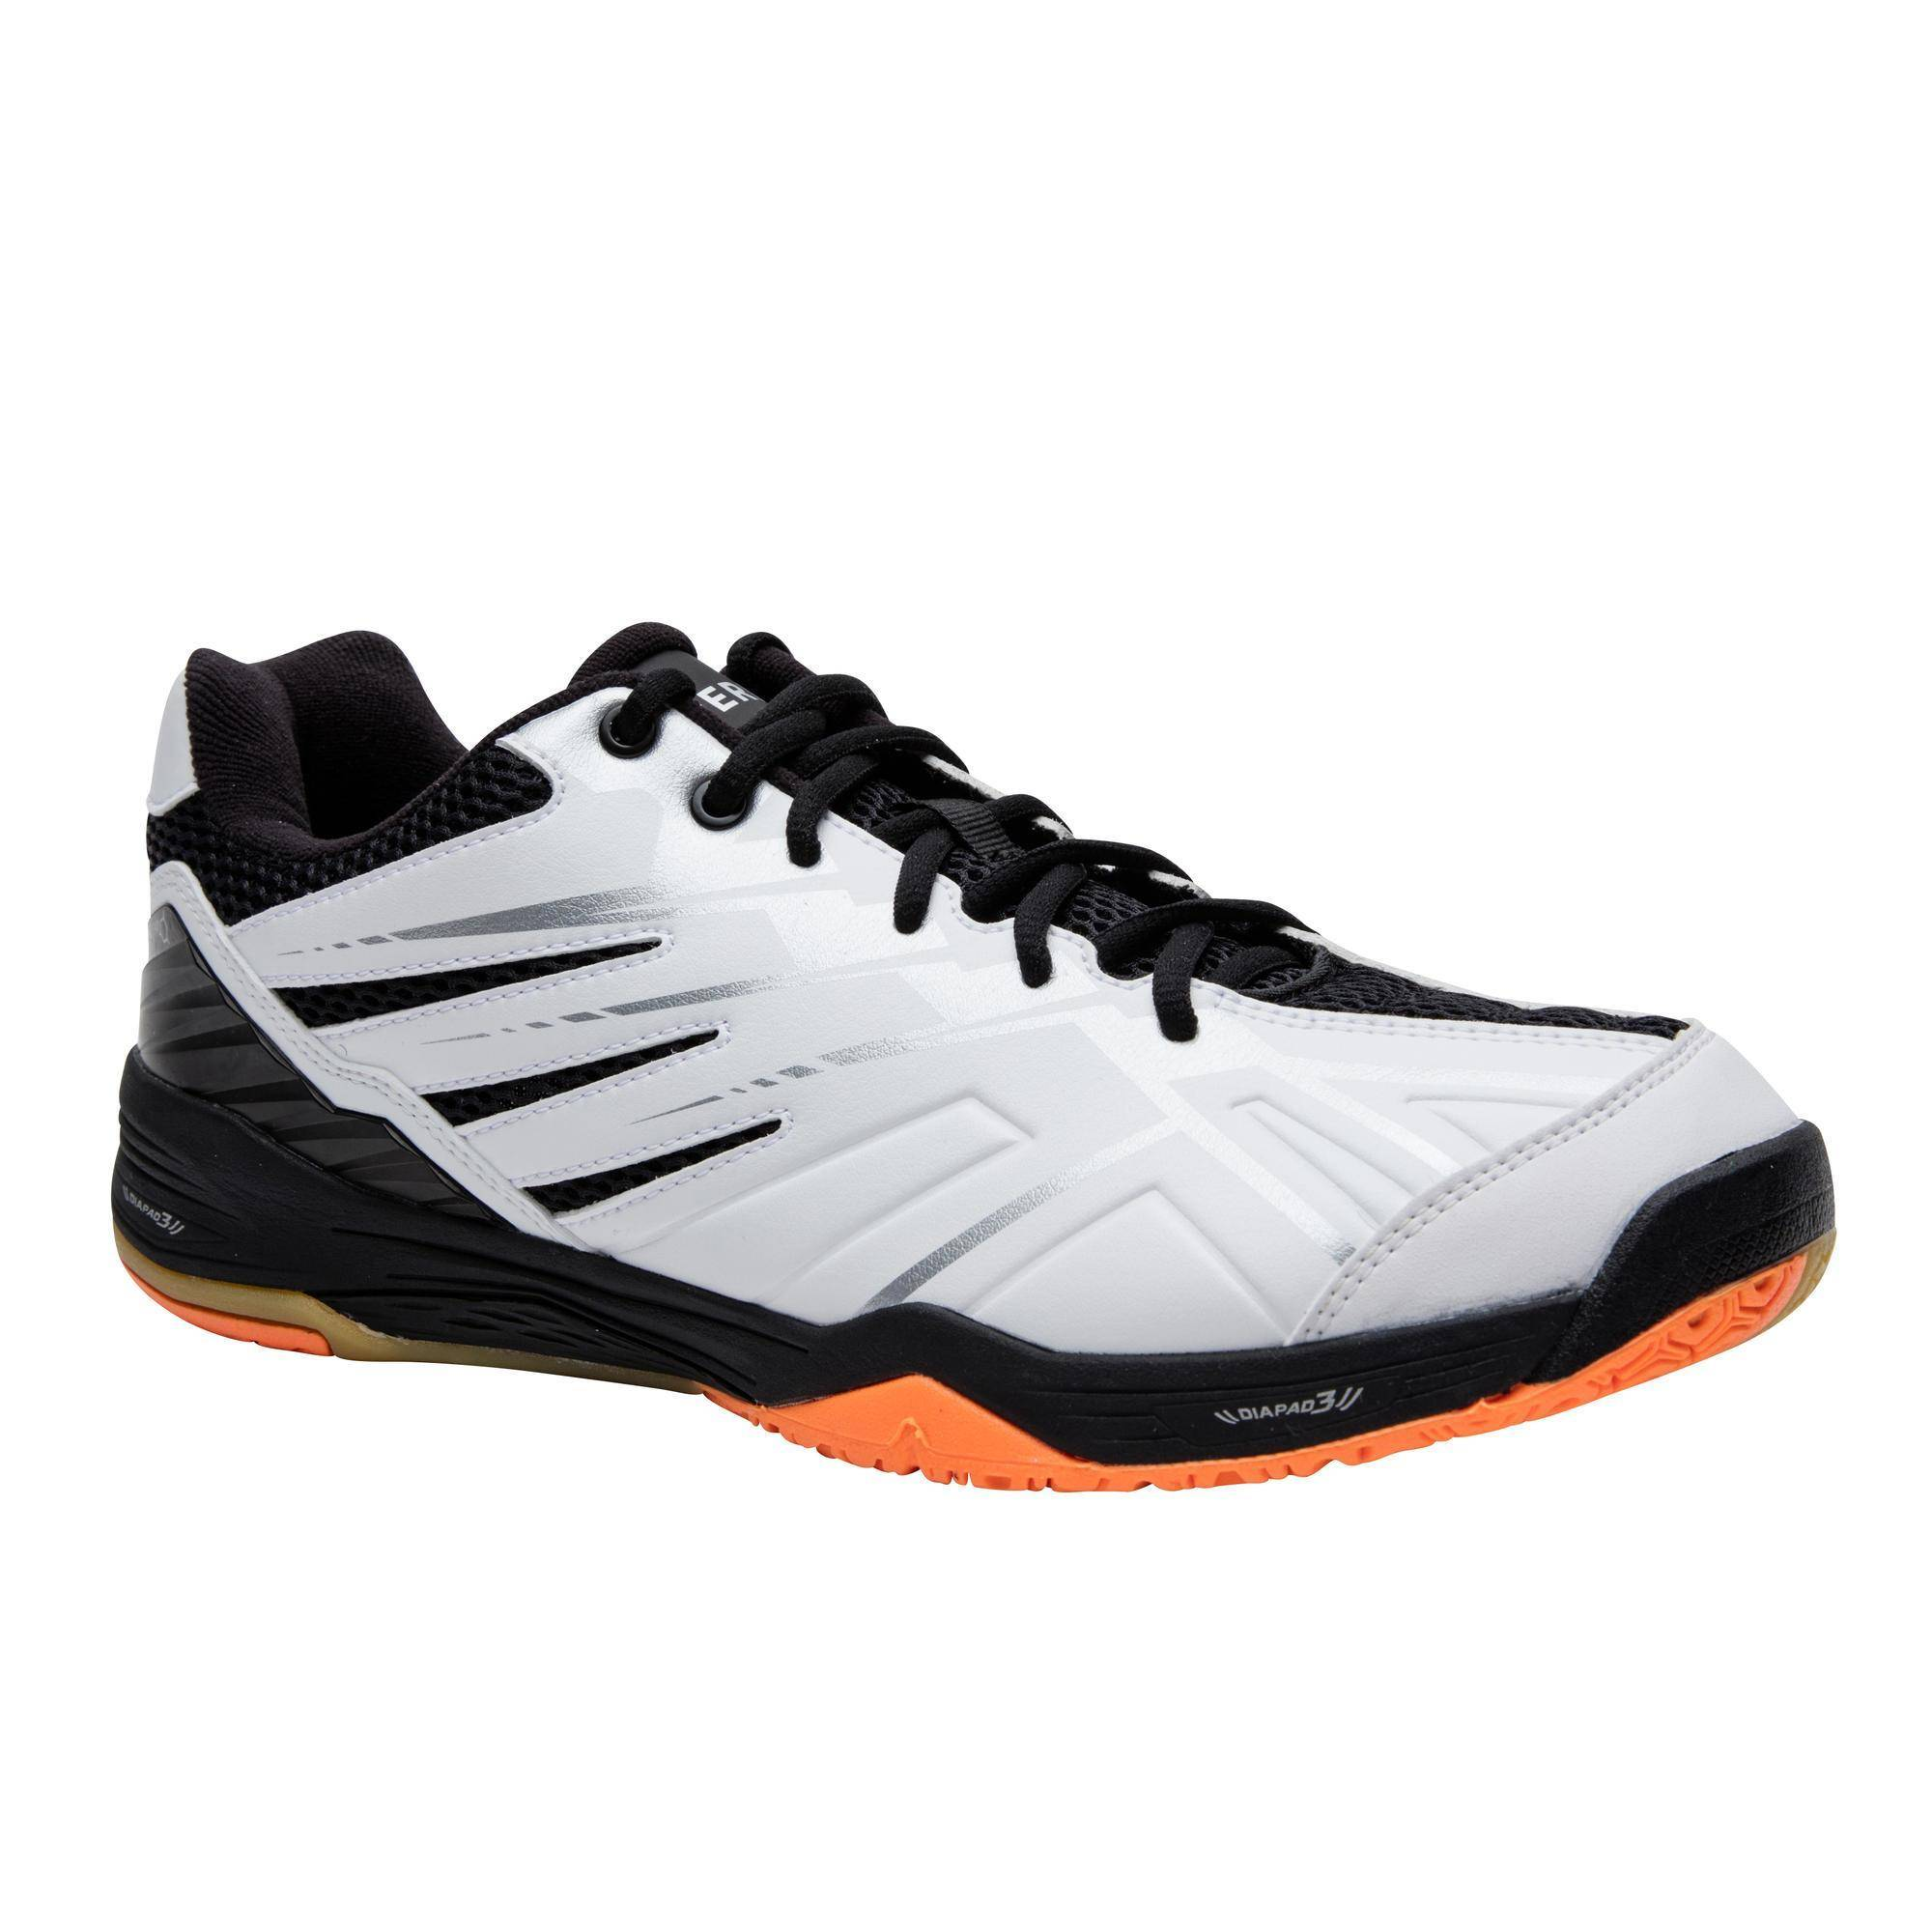 Perfly Chaussures de Badminton BS 590 Max Confort - Blanche - Perfly